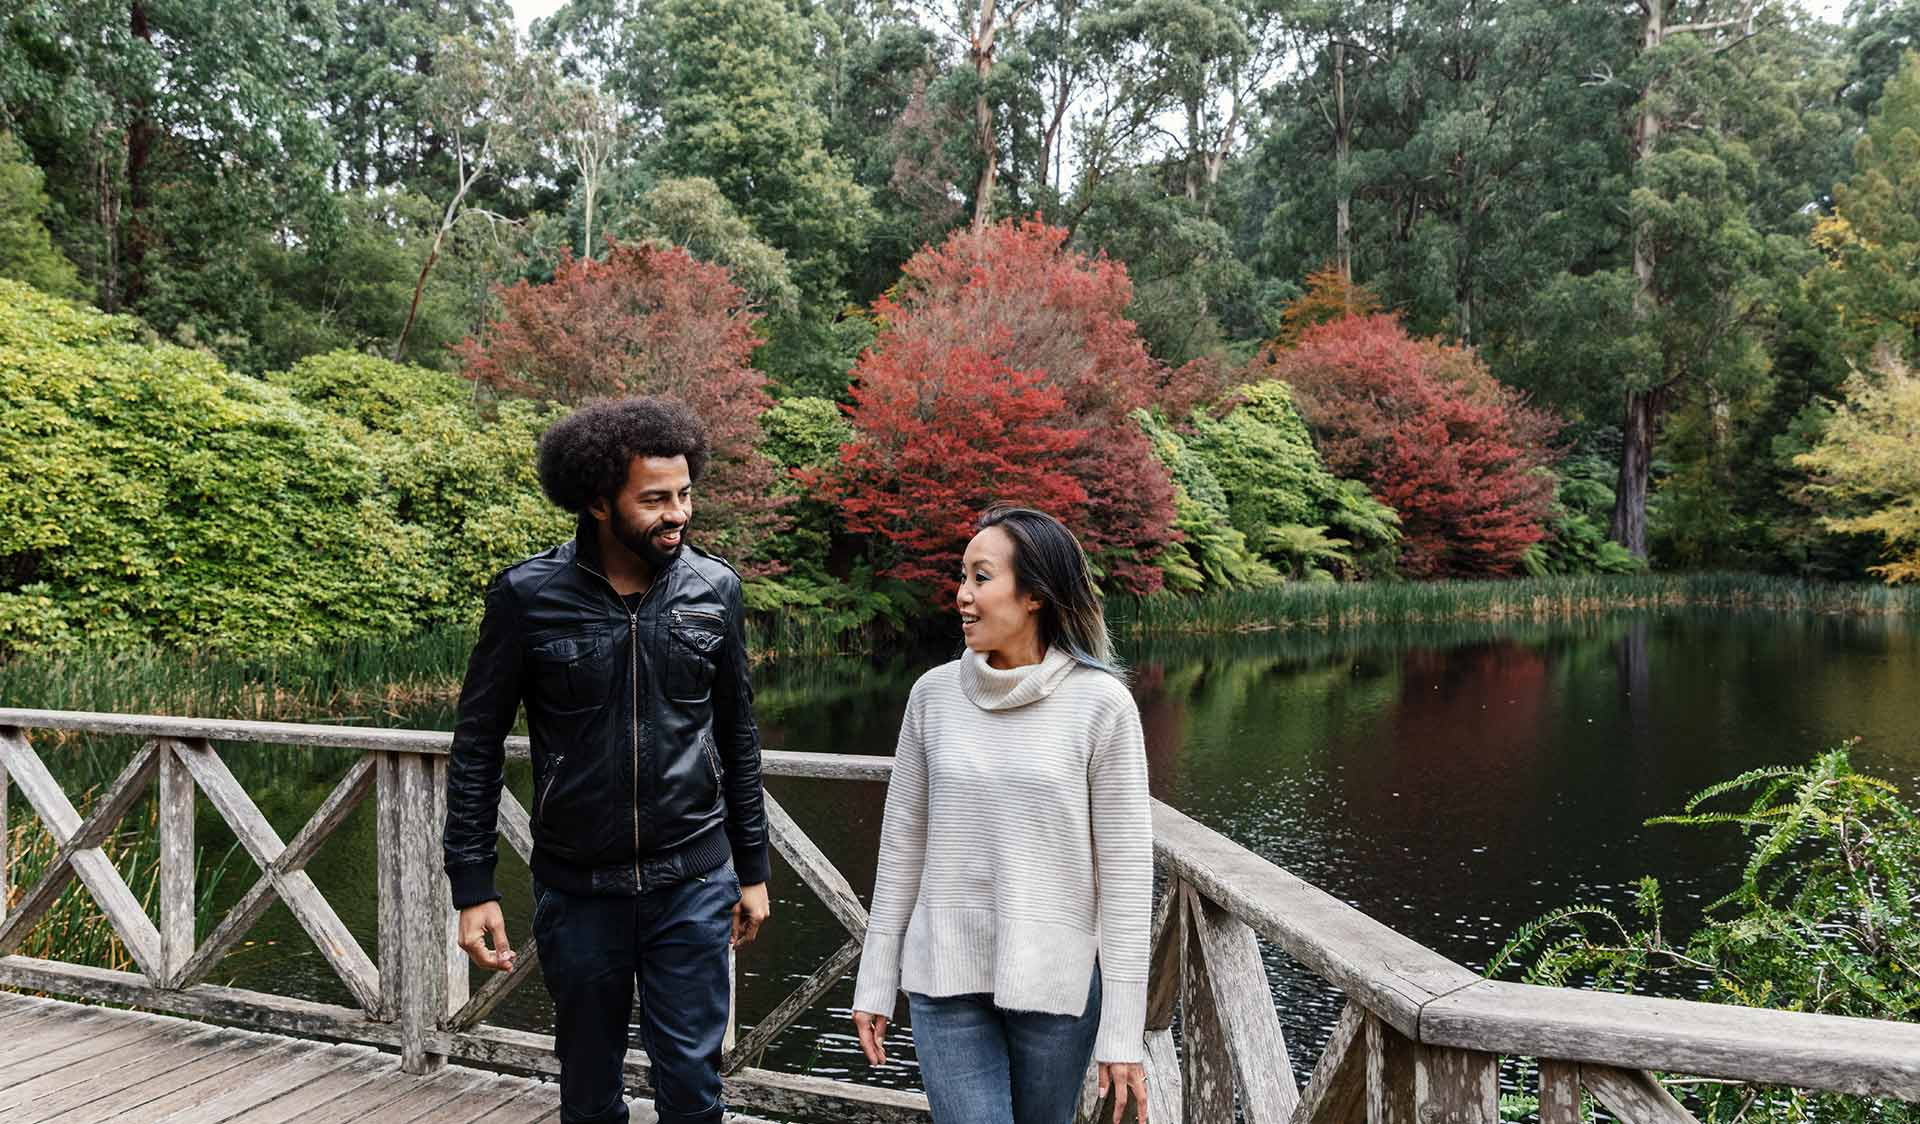 A man with an afro wearing a leather jacket and woman wearing a cream knitted jumper turn and walk away from a lake in the Dandenong Ranges Botanical Gardens.